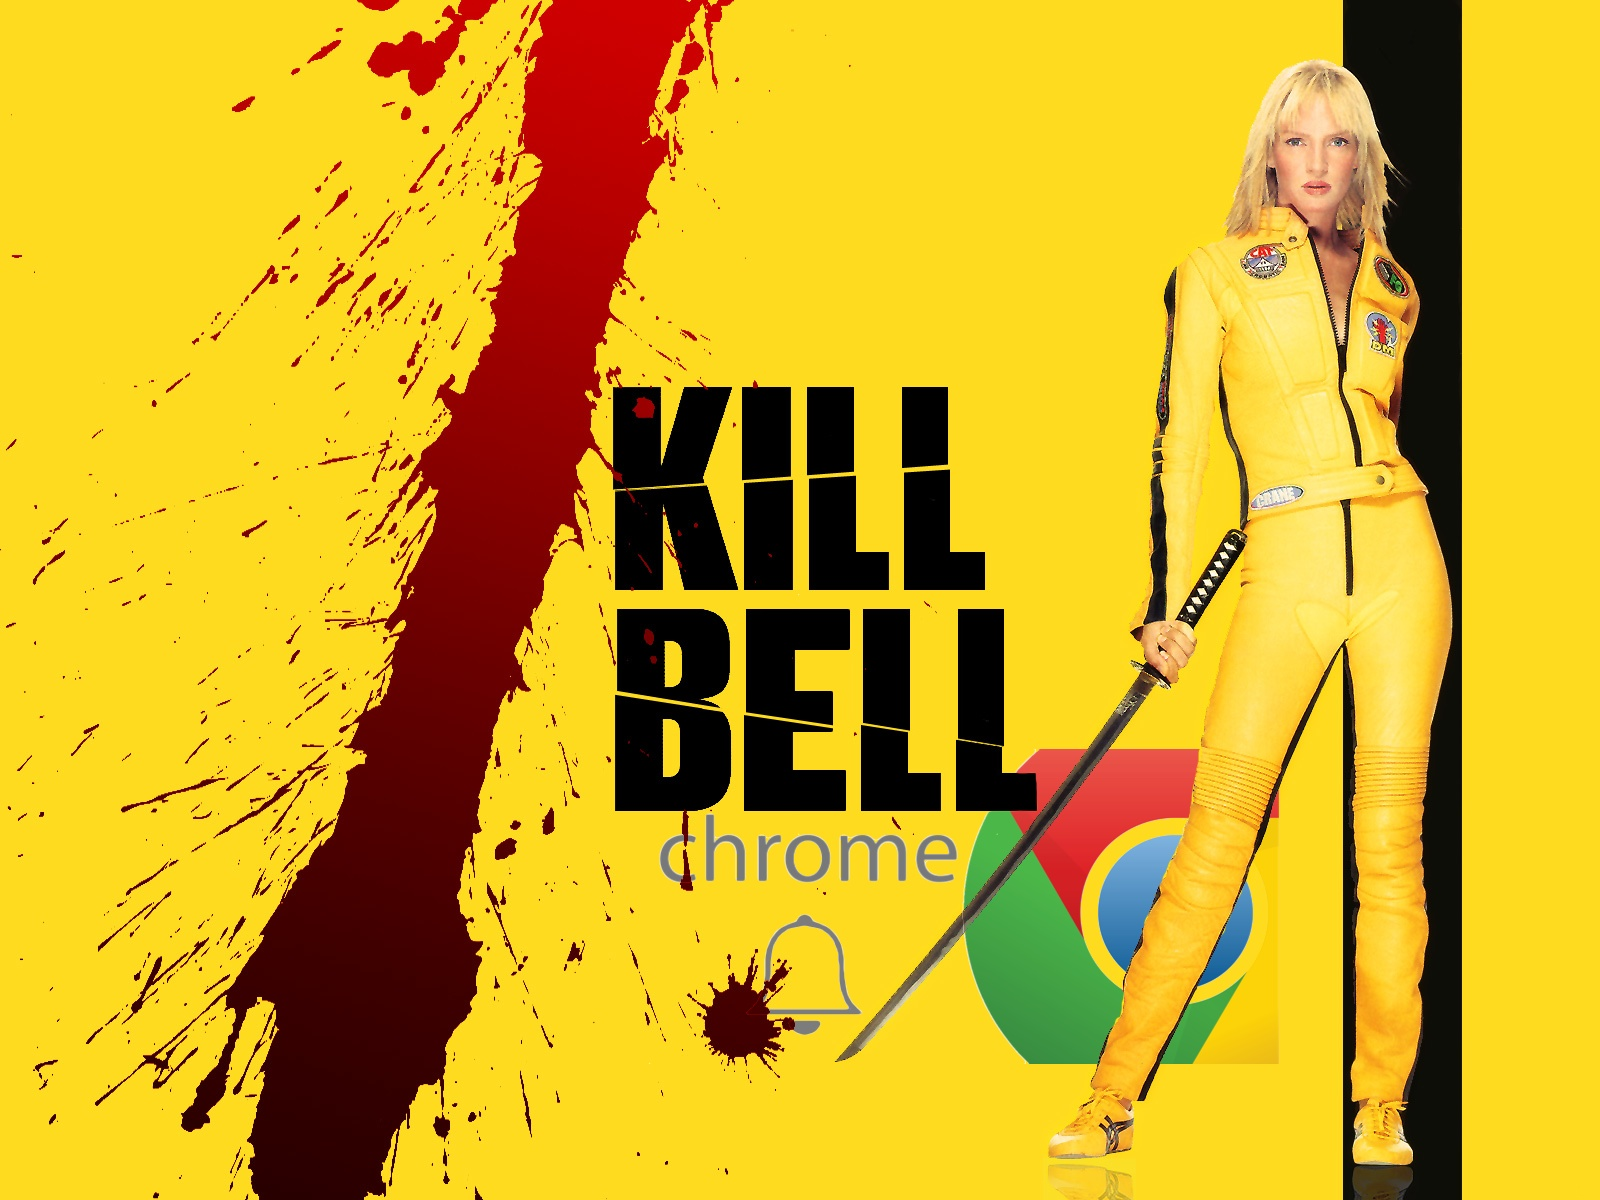 kill_bell_Google_Chrome